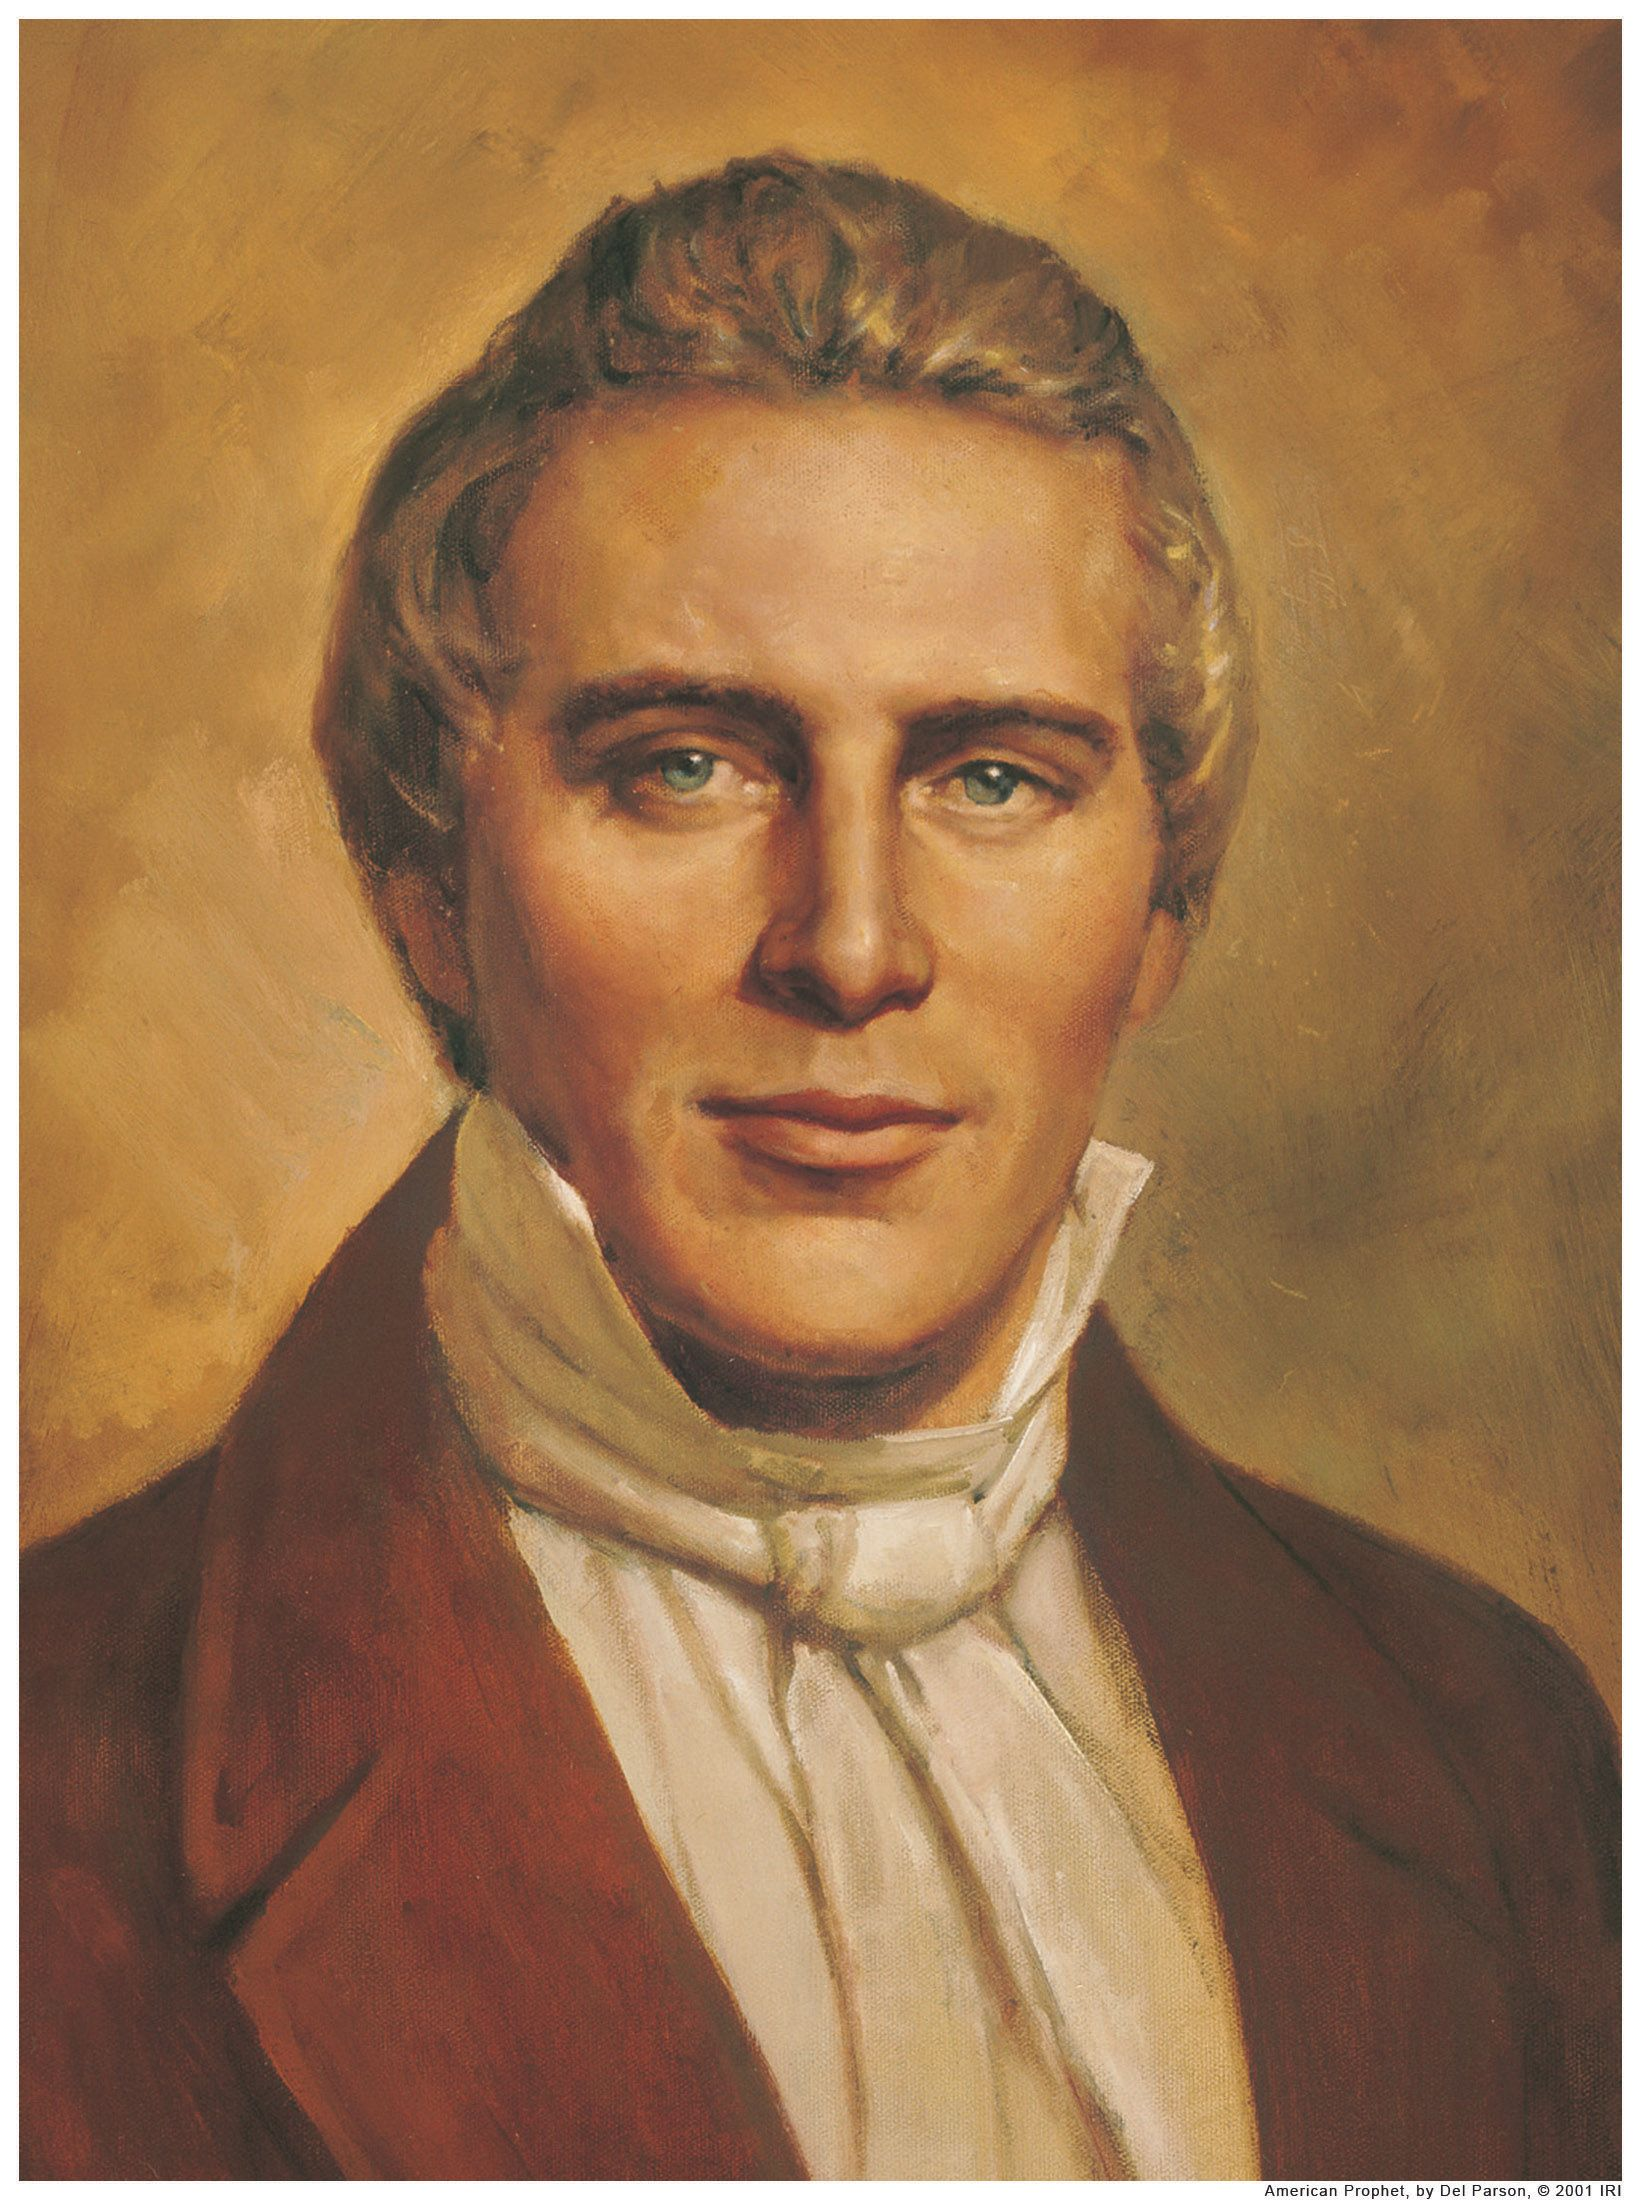 Mormons believe Joseph Smith was a prophet of God. Like Adam, Noah, Moses, and other biblical prophets, Mormons believe Joseph was a special witness for Christ, testifying of His divinity and teaching His gospel and commandments to all mankind.